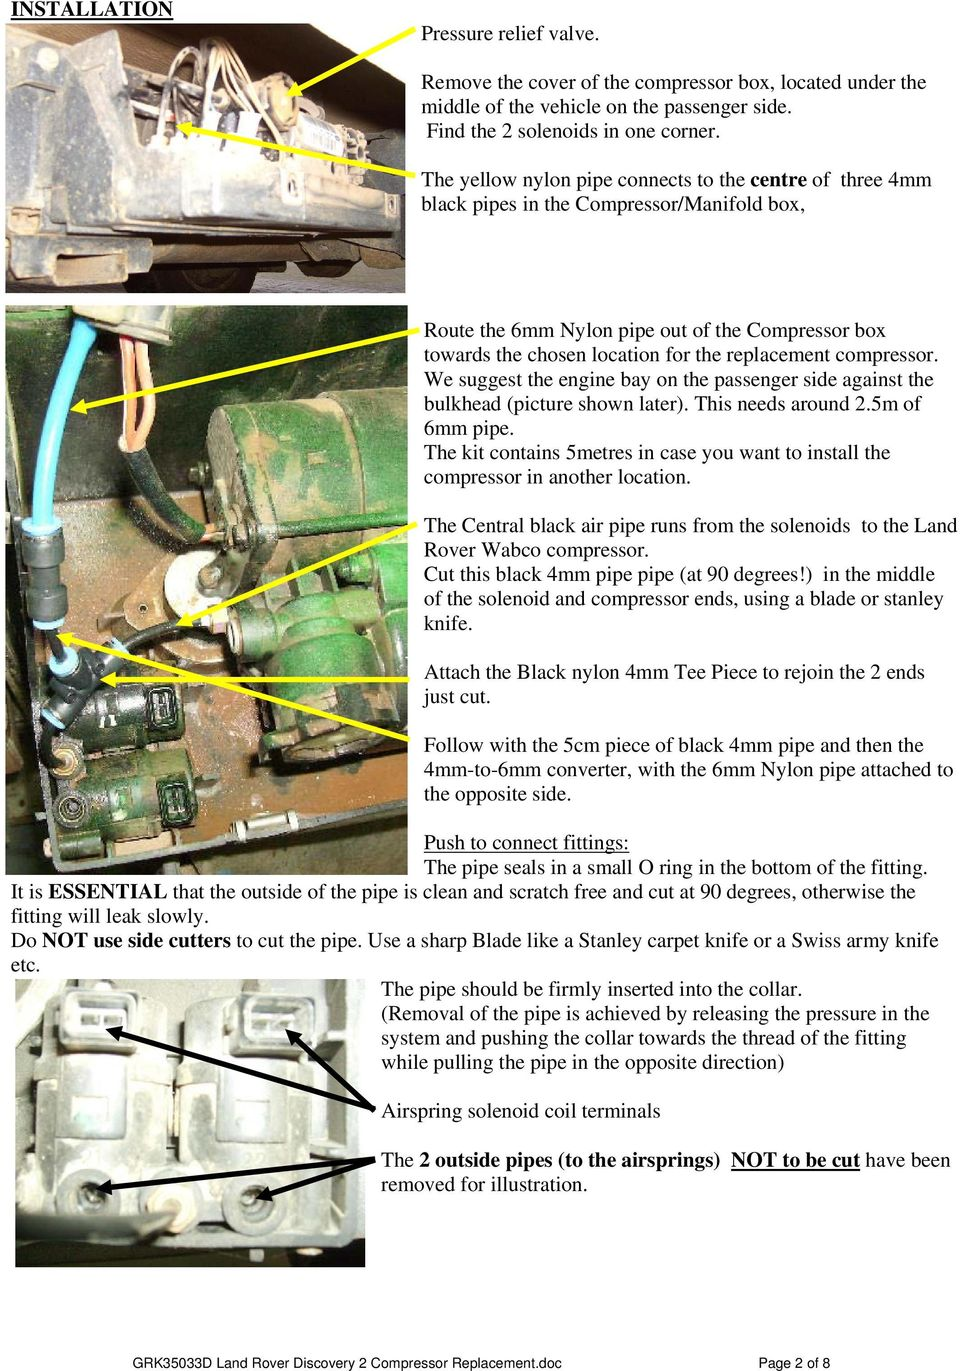 Gremeltech Air Spring Specialists Pdf 1999 Disco 2 Wiring Diagram Replacement Compressor We Suggest The Engine Bay On Passenger Side Against Bulkhead